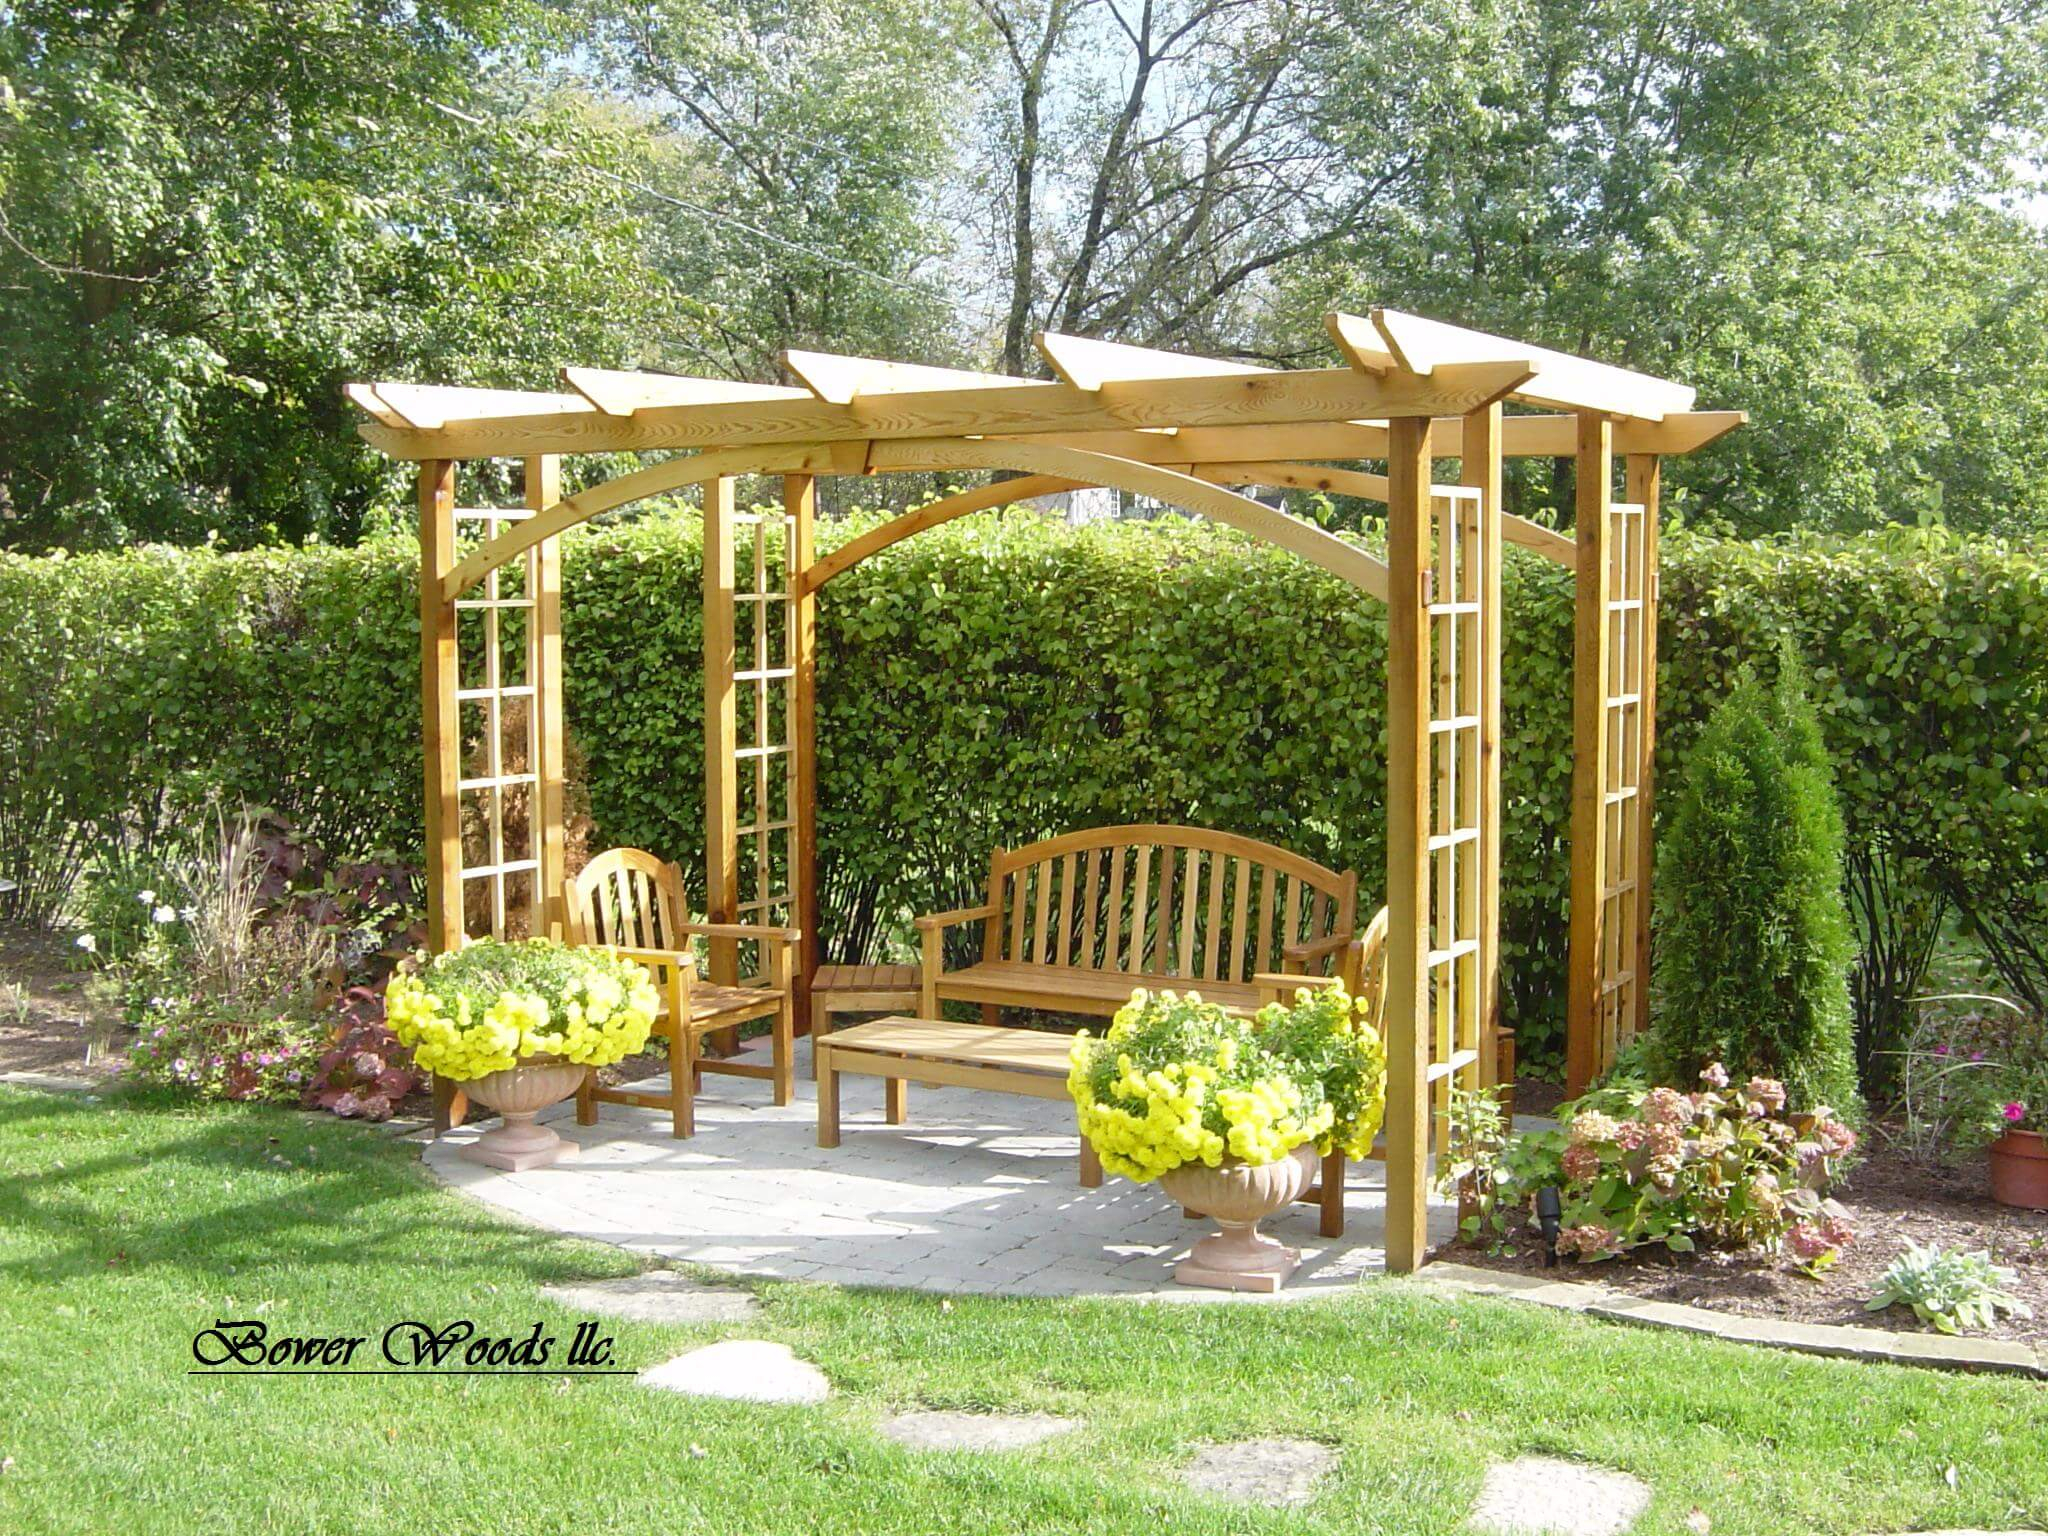 32 Best Pergola Ideas And Designs You Will Love In 2019 intended for Small Backyard Pergola Ideas